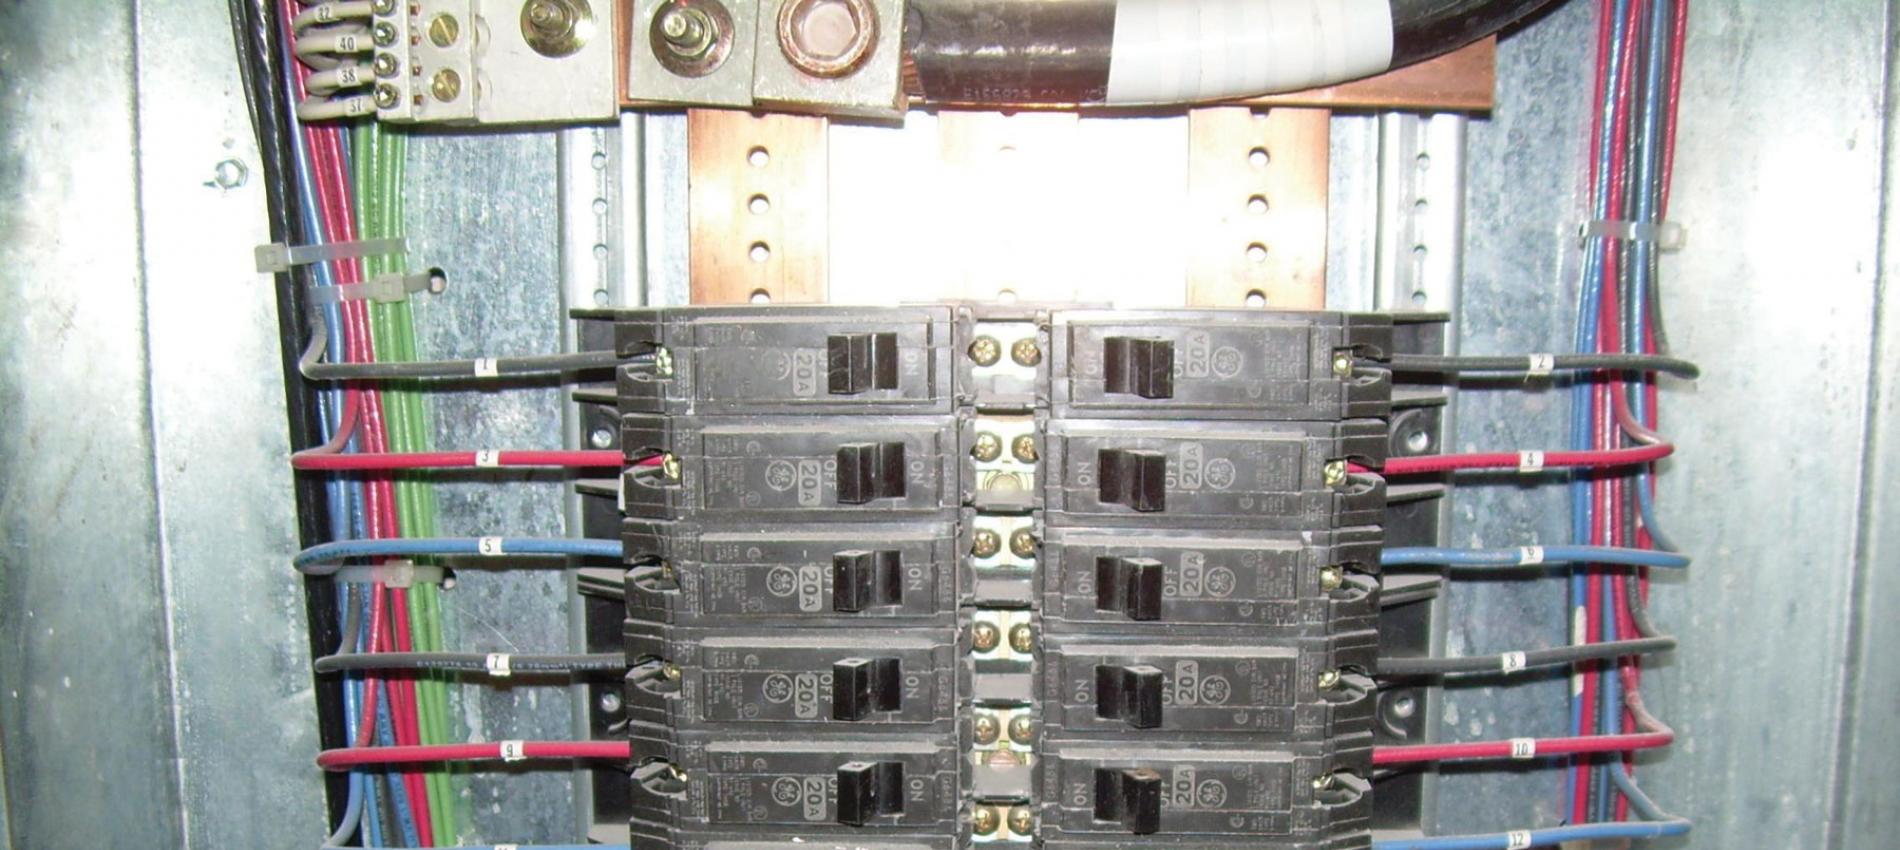 Type Mc Cable Support Ground Rods And More Electrical Contractor History Of Wiring Tracing Circuits Supplied By Multiple Nominal Voltage Systems